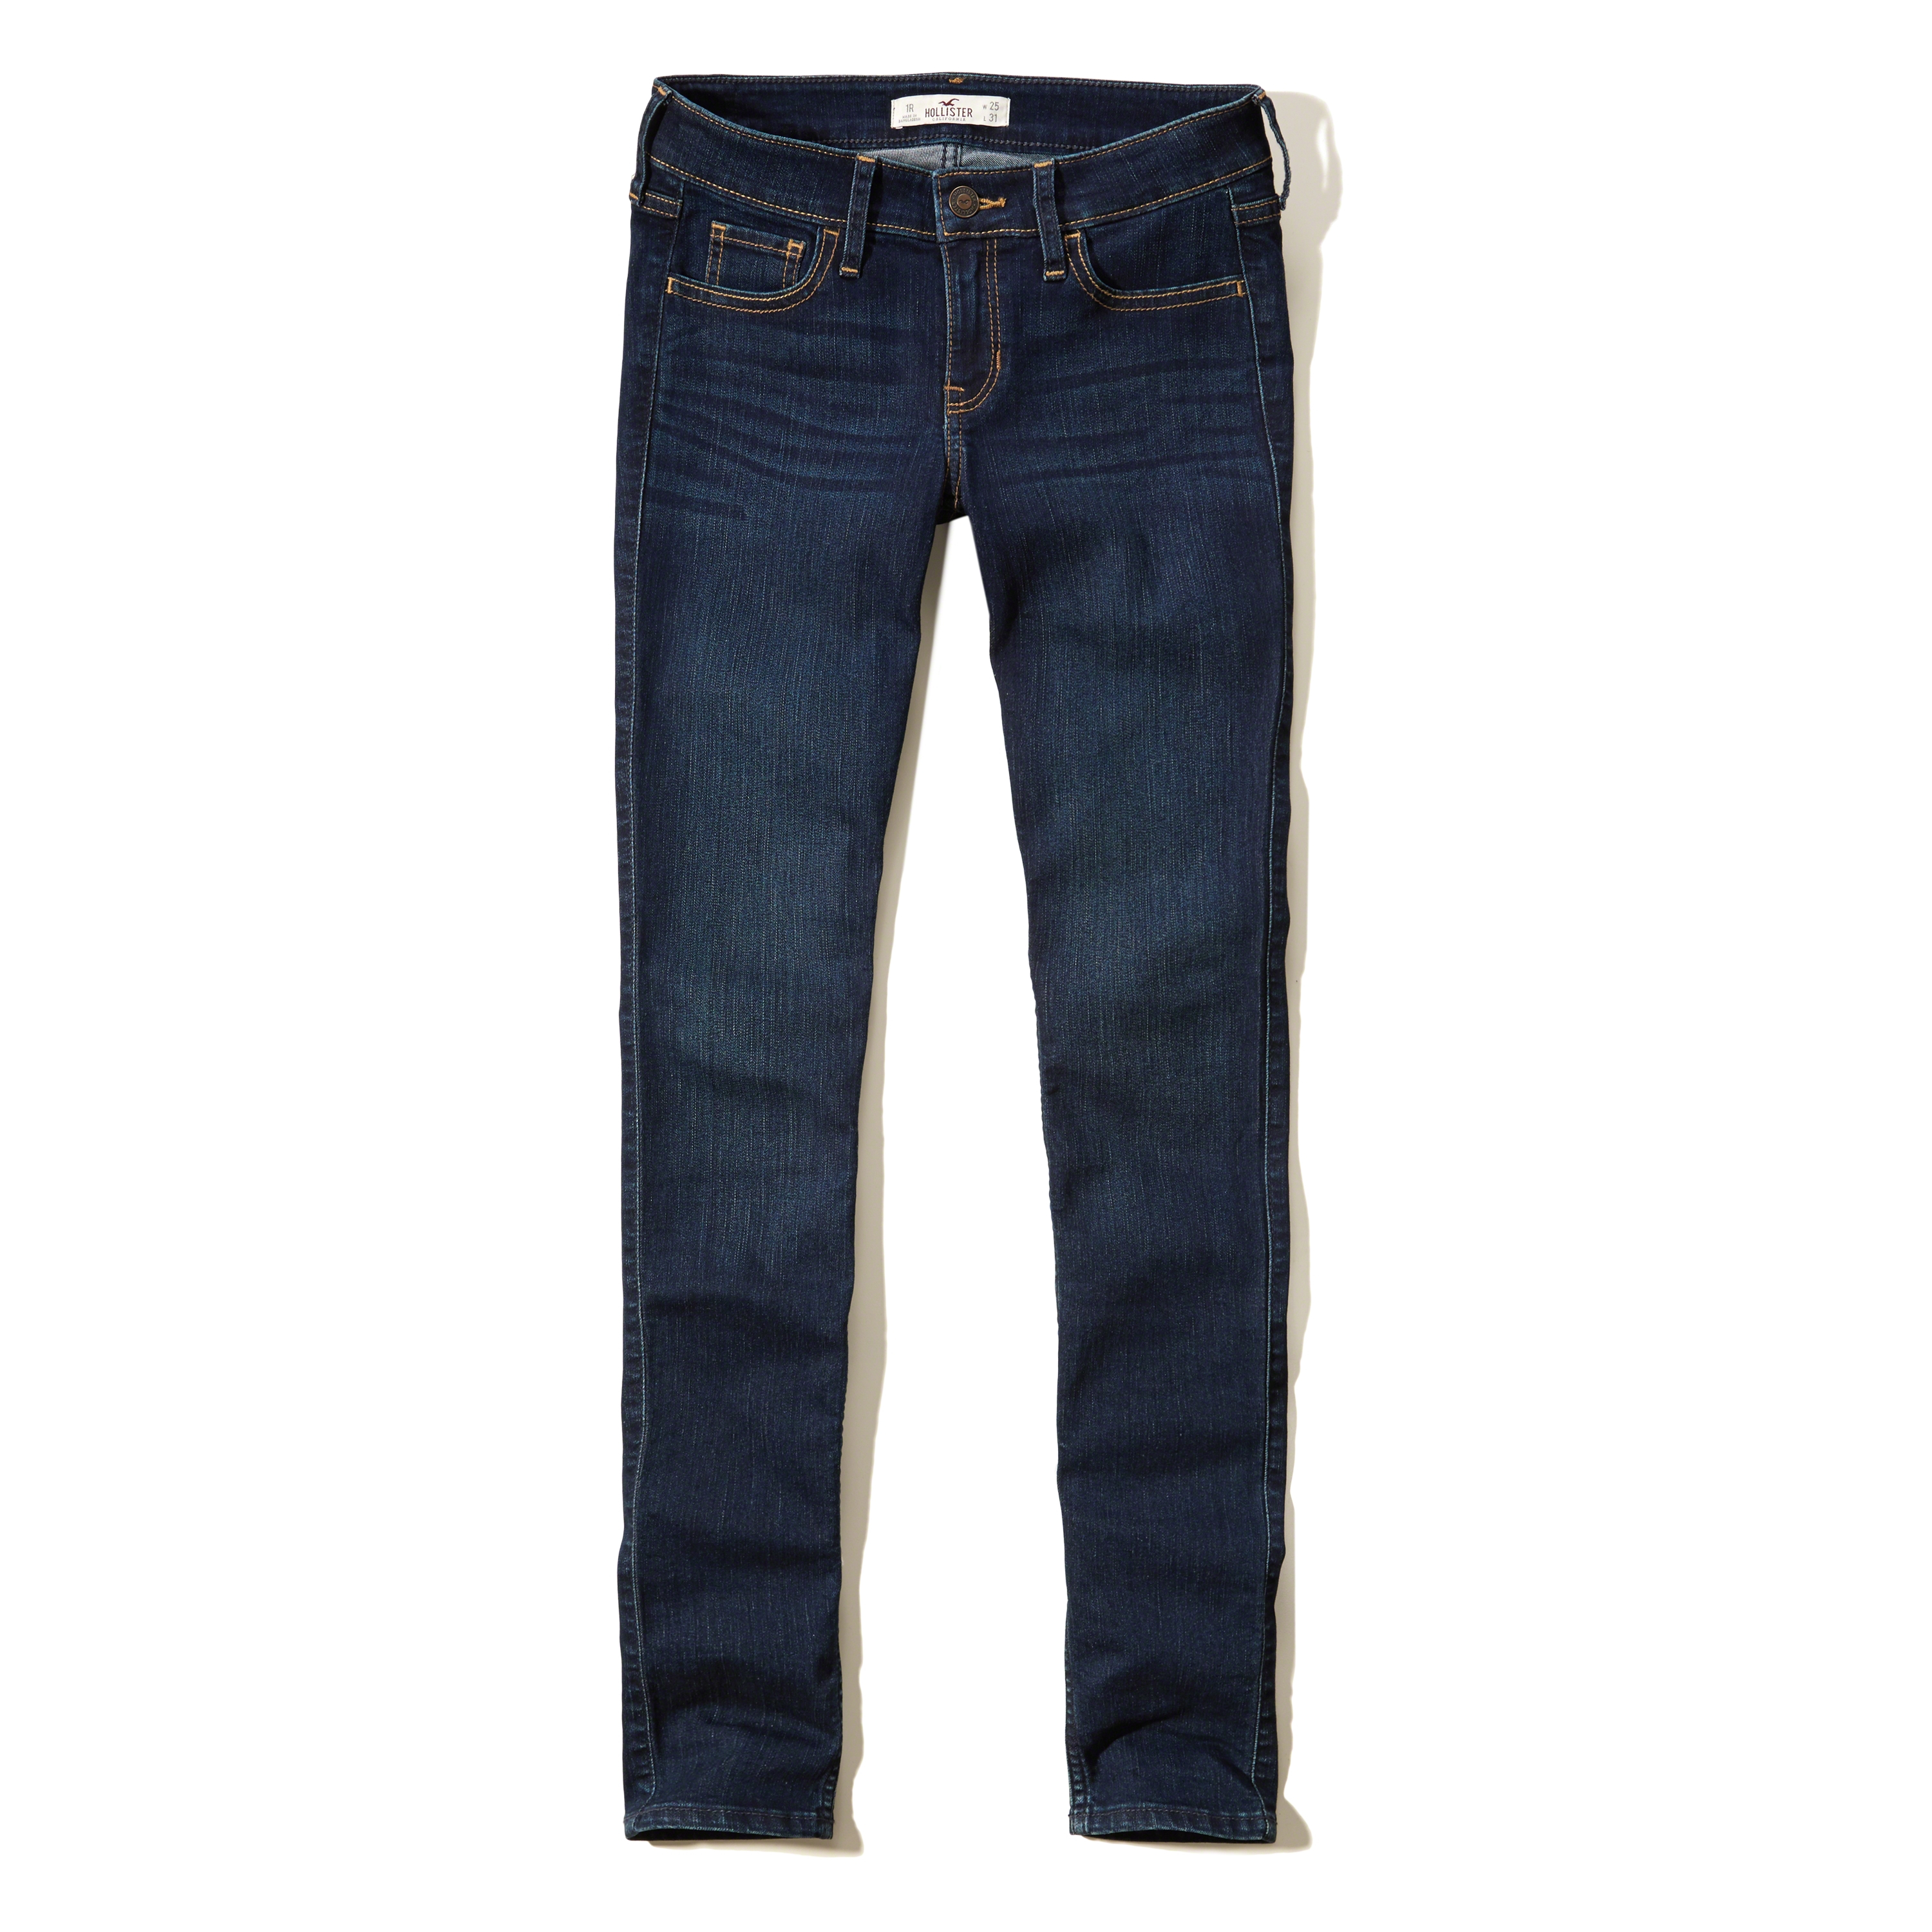 Hollister Low-rise Super Skinny Jeans in Blue | Lyst